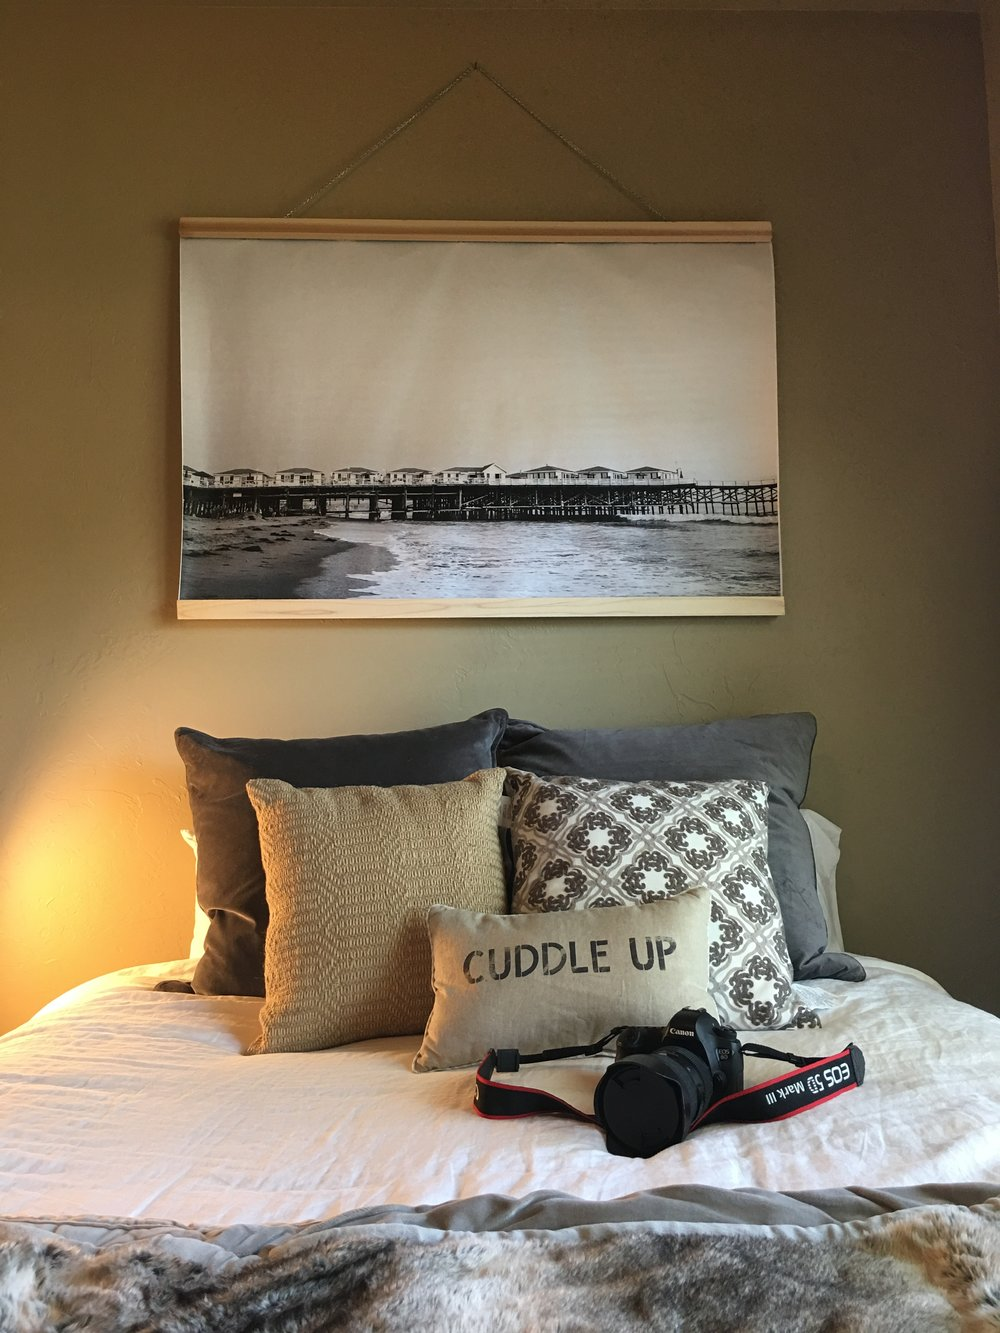 I got all moved in! I printed a photo from this summer and created a frame for it so I could hang it above my bed!